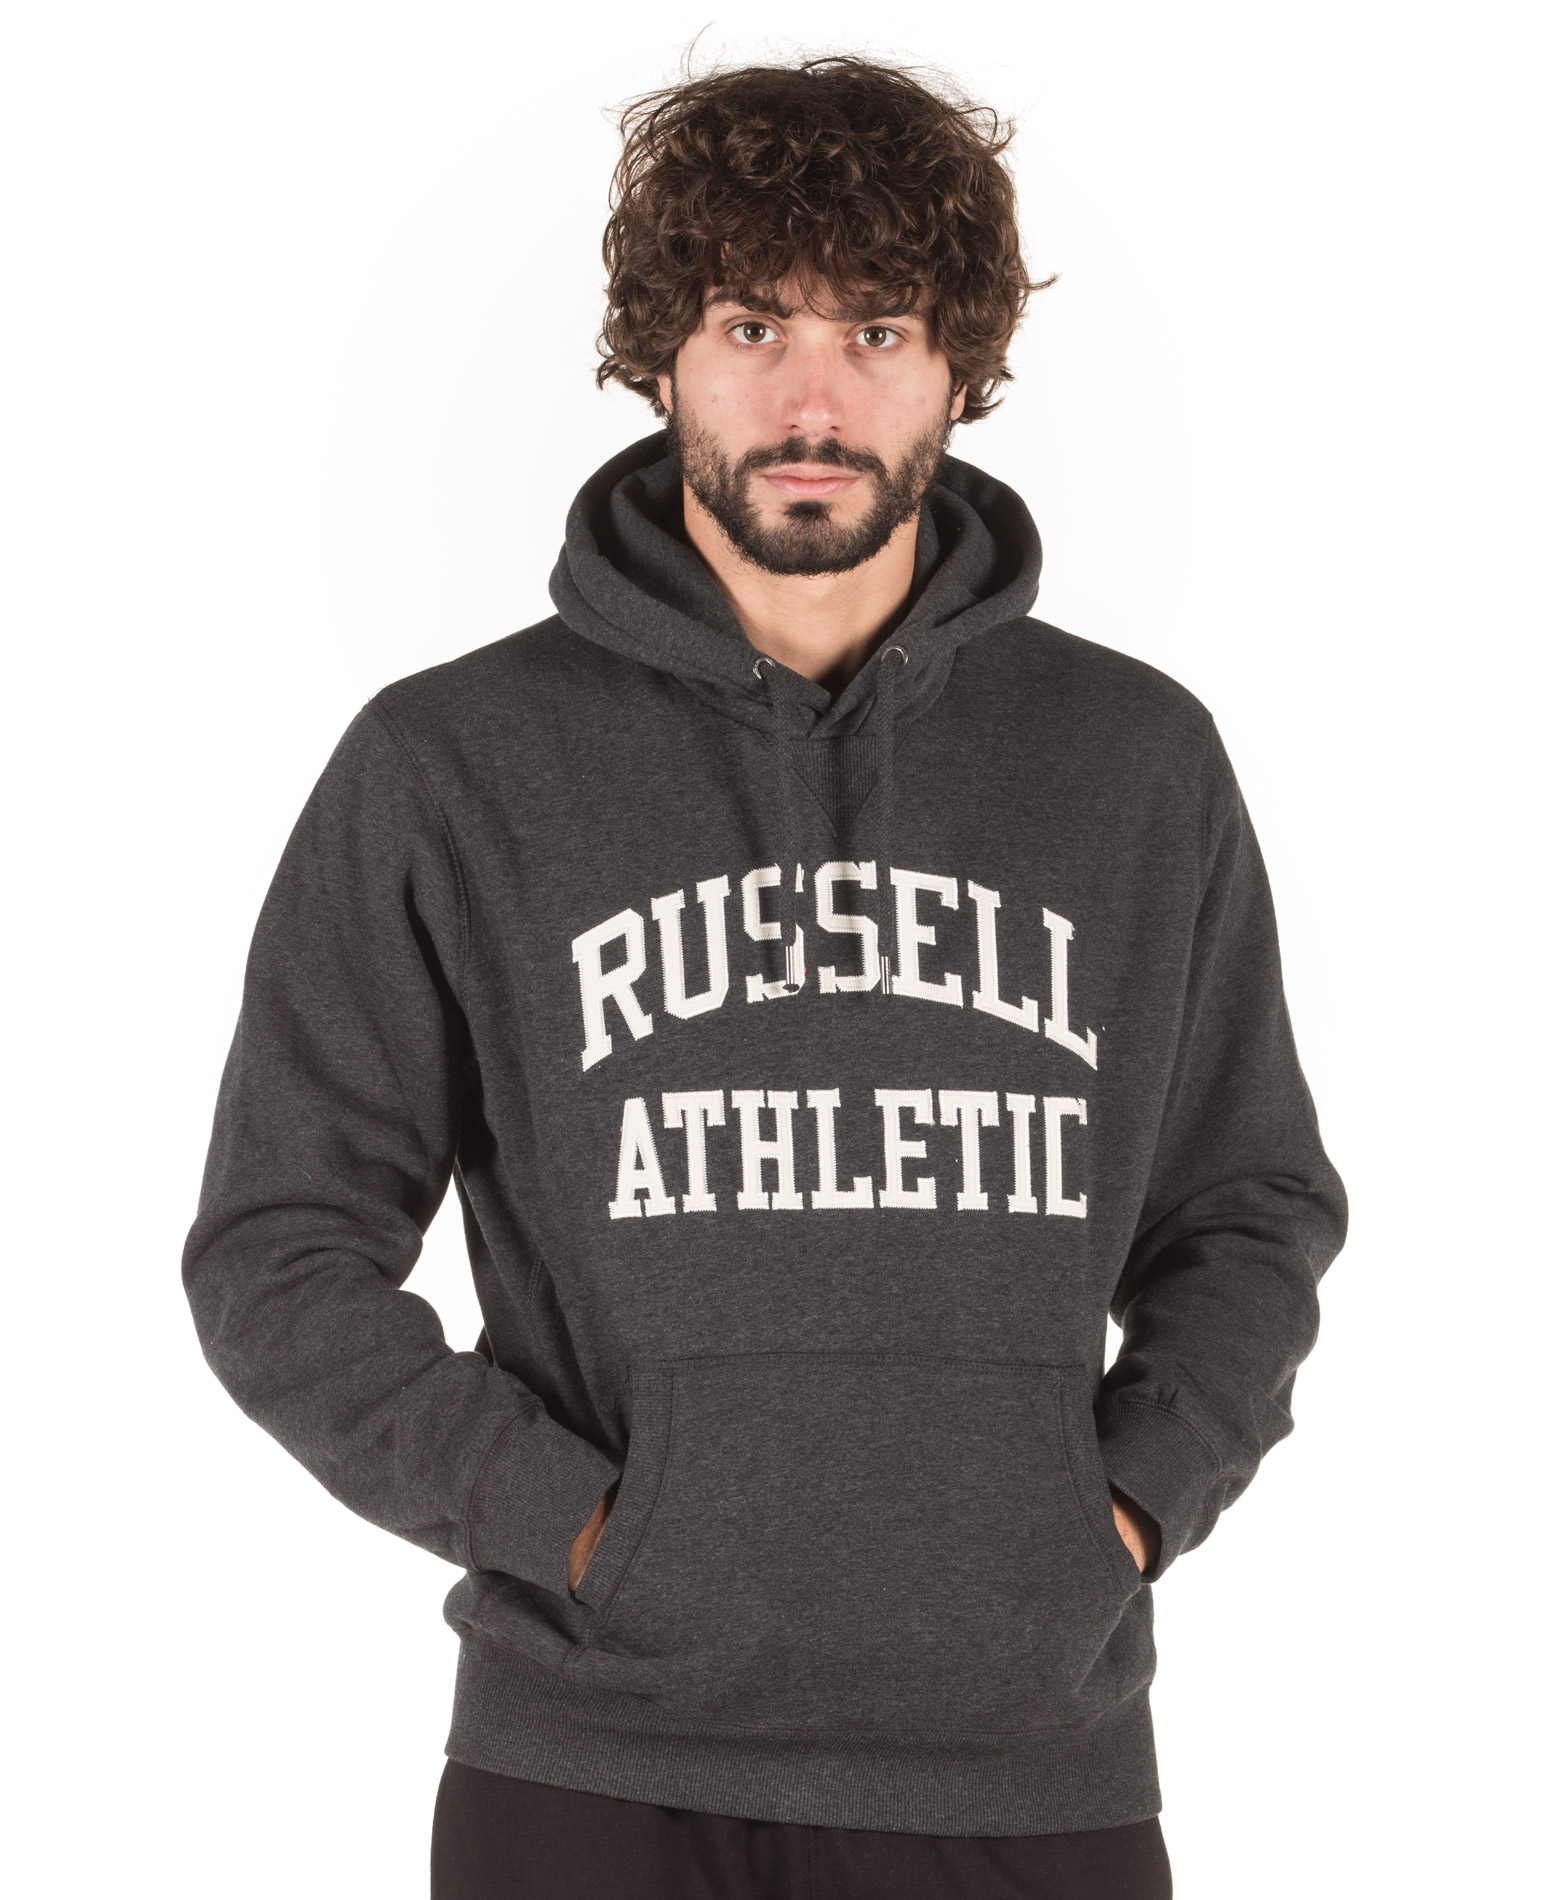 Russell Athletic A8-006-2-098 Ανθρακί